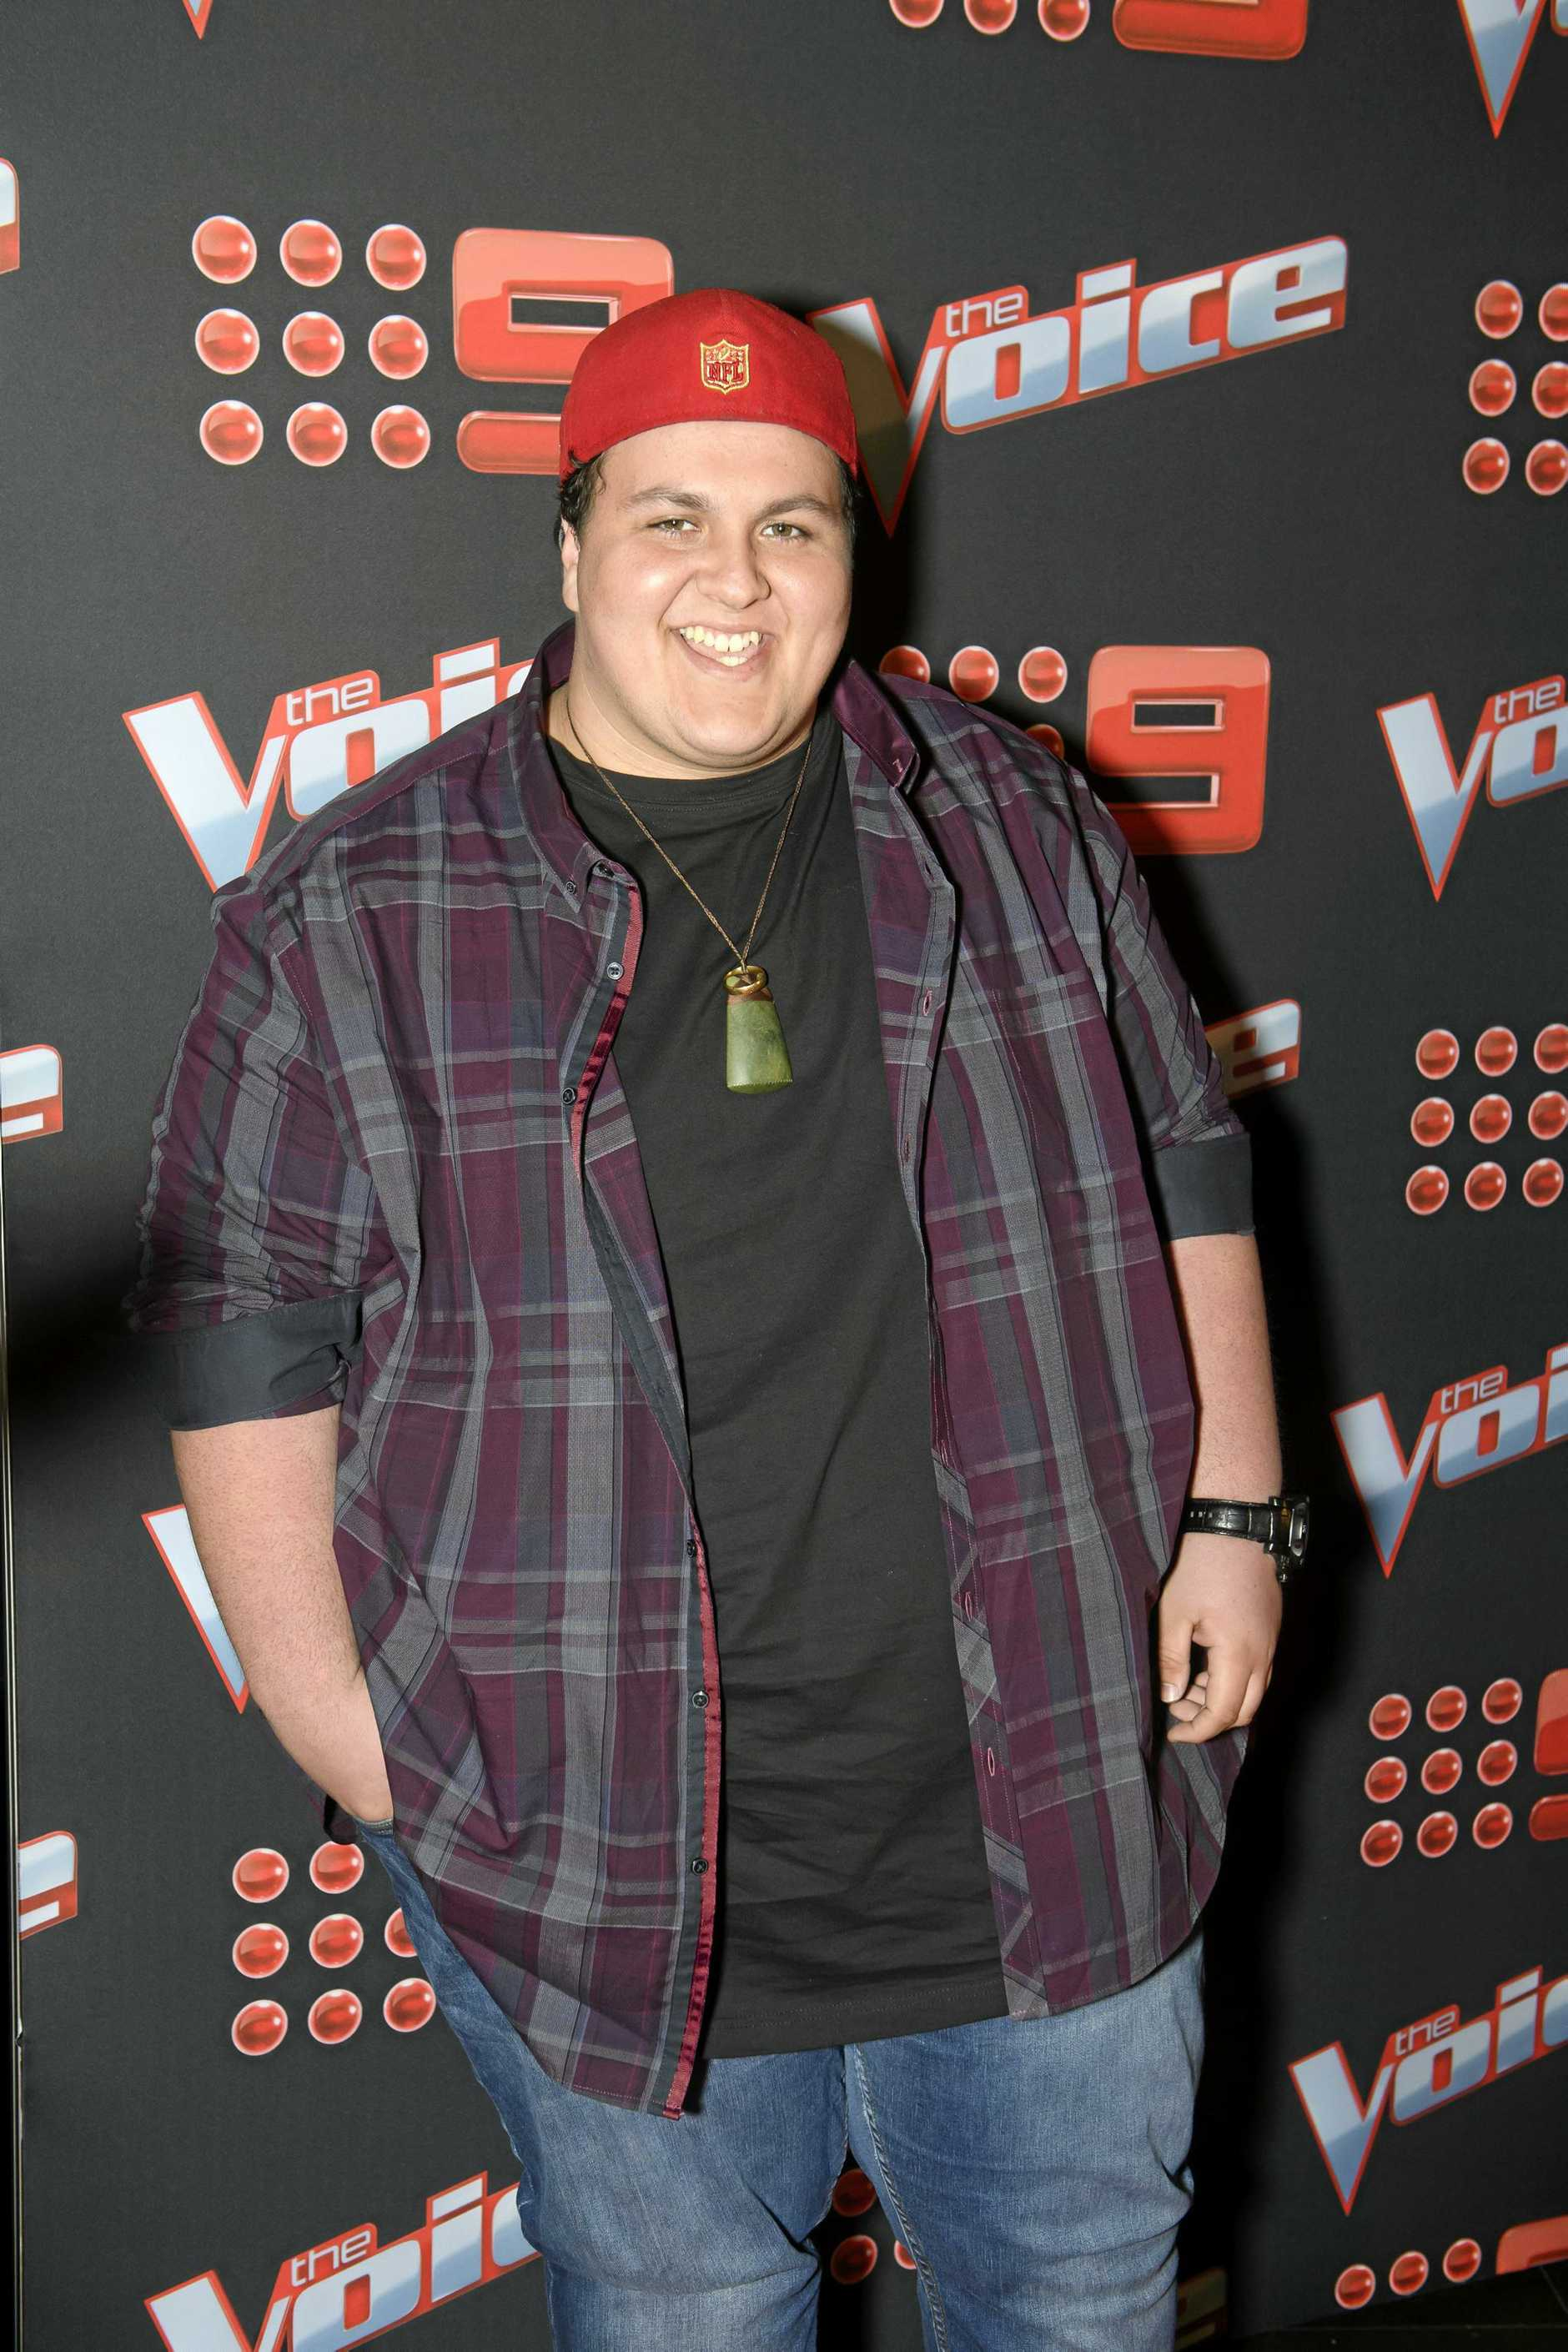 Team Delta's Judah Kelly.